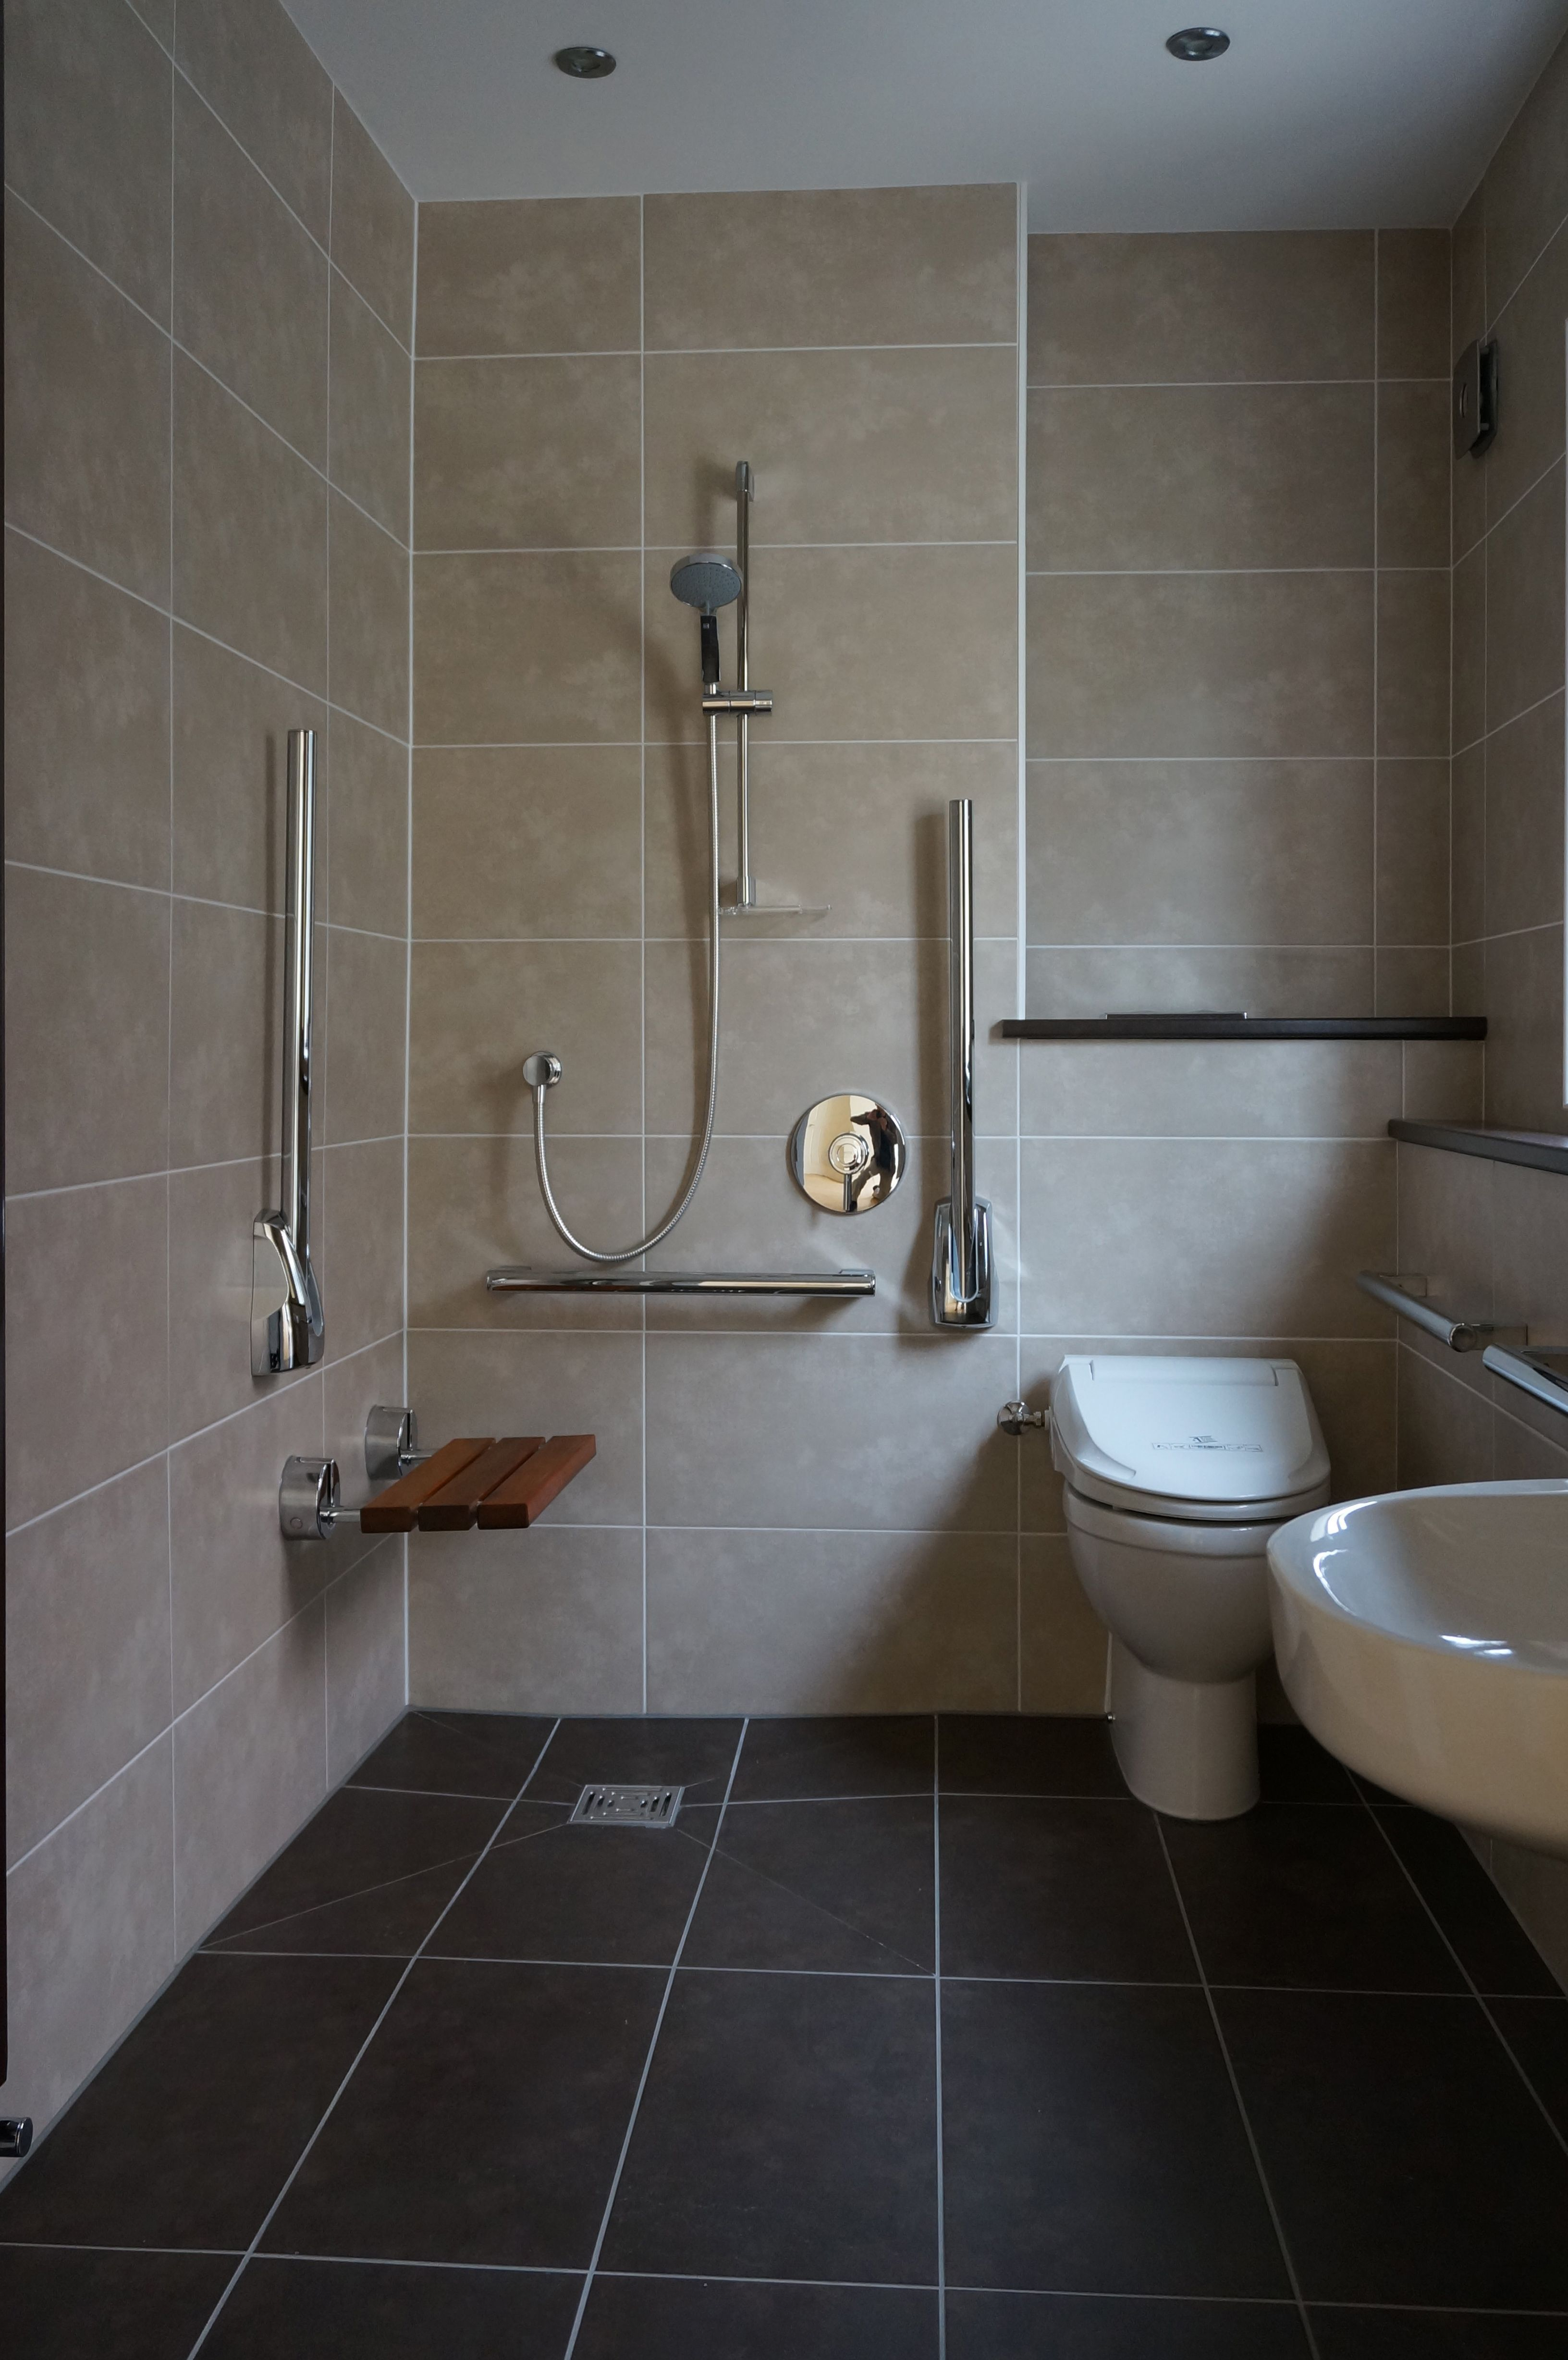 Wet Room Design Ideas If You Are Thinking About Ways To Spruce